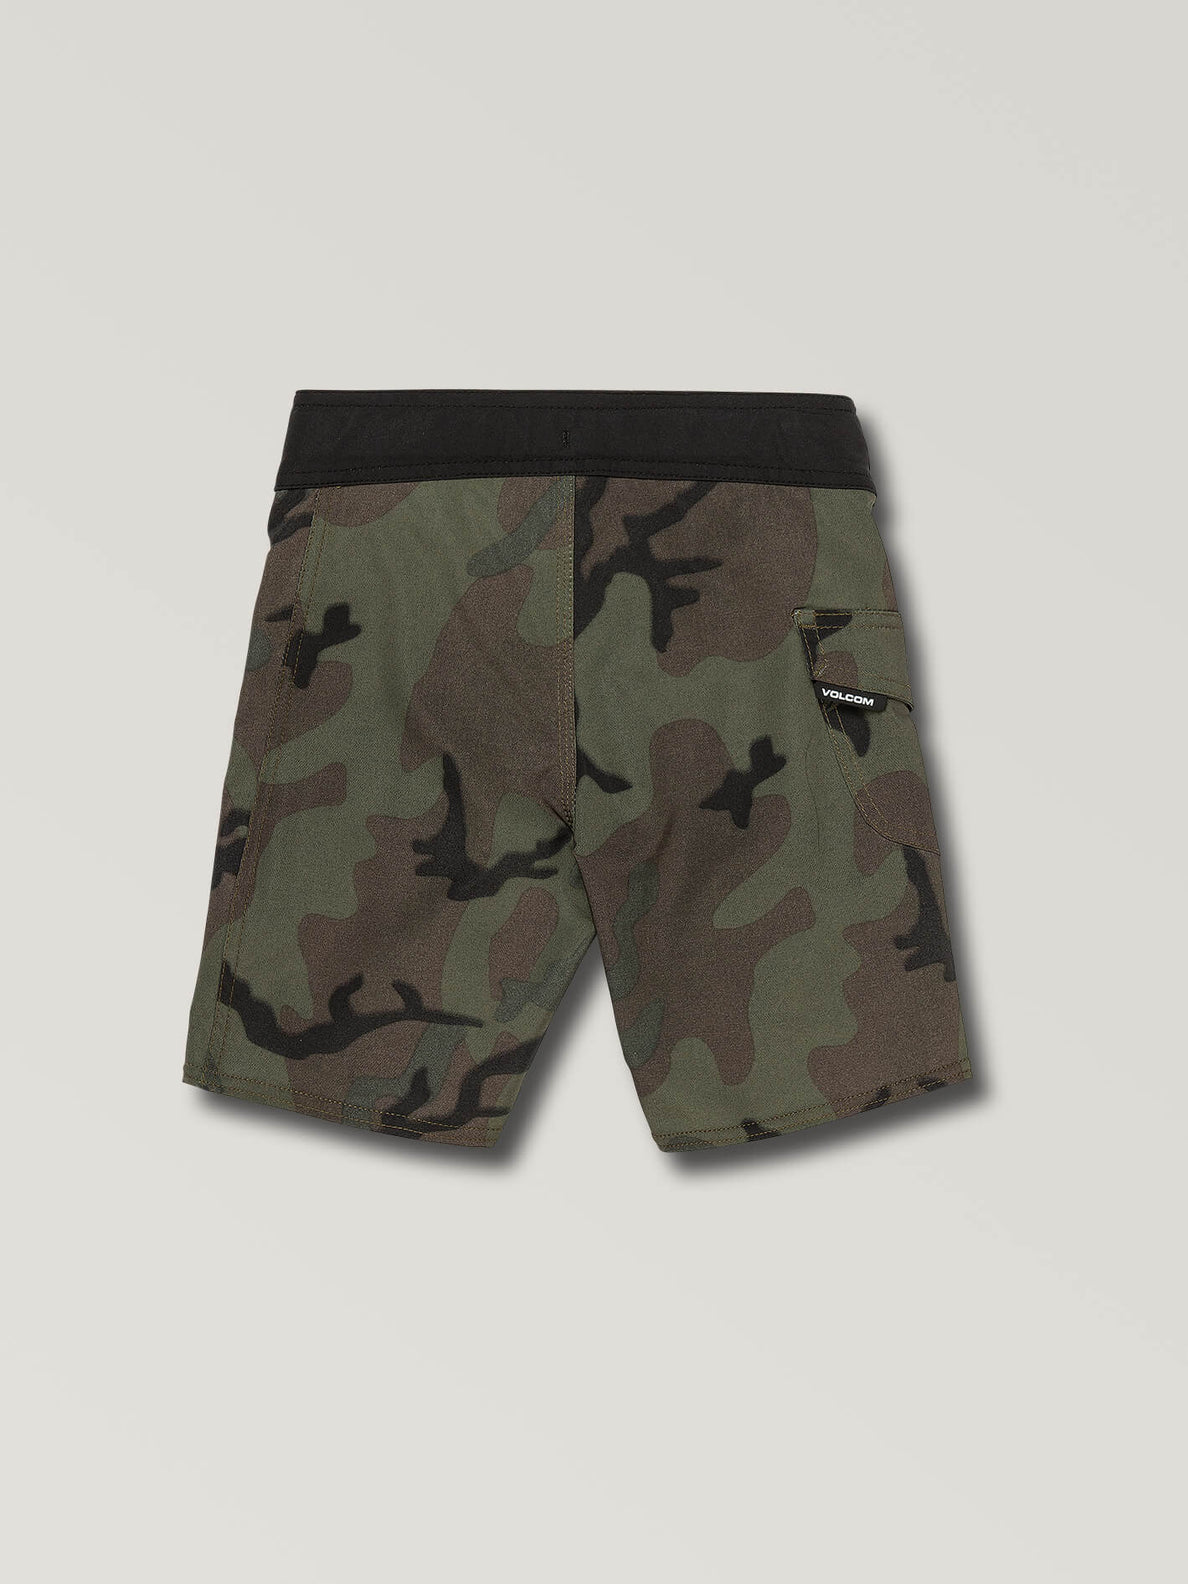 Little Boys Deadly Stones Mod Boardshorts In Camouflage, Back View